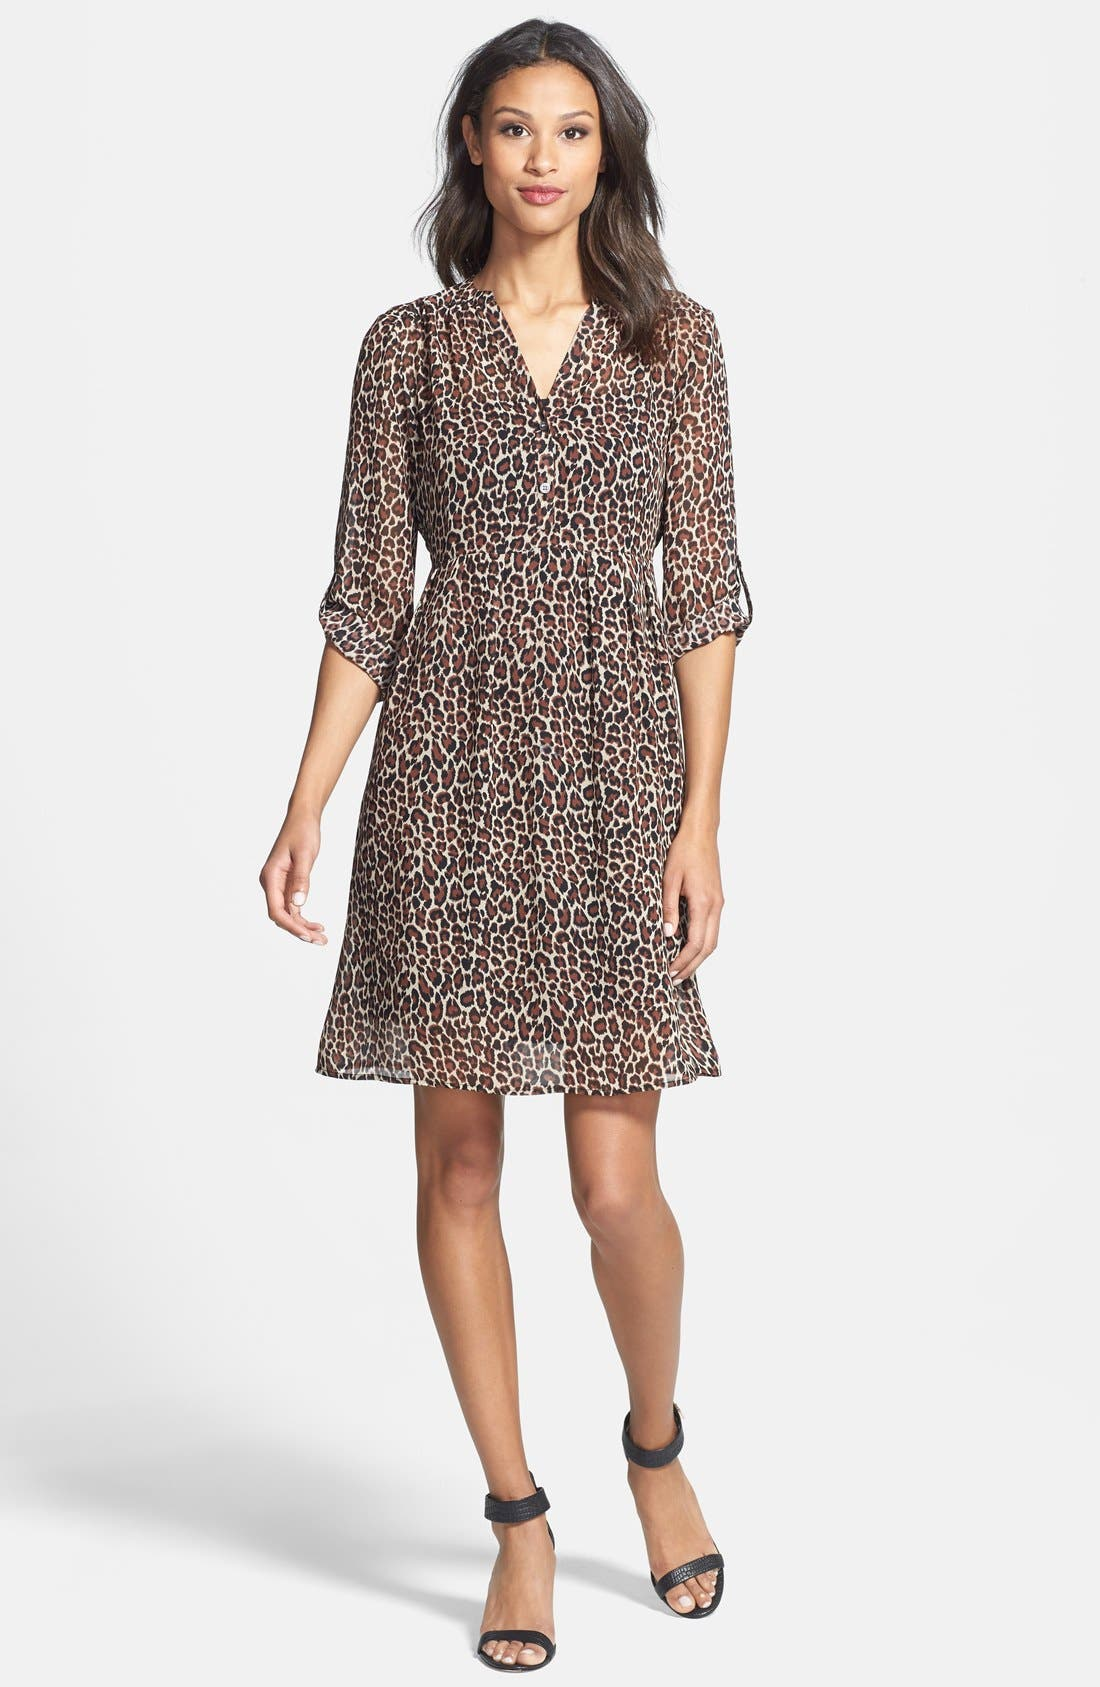 Main Image - Two by Vince Camuto Split Neck Leopard Print Shirtdress (Regular & Petite)